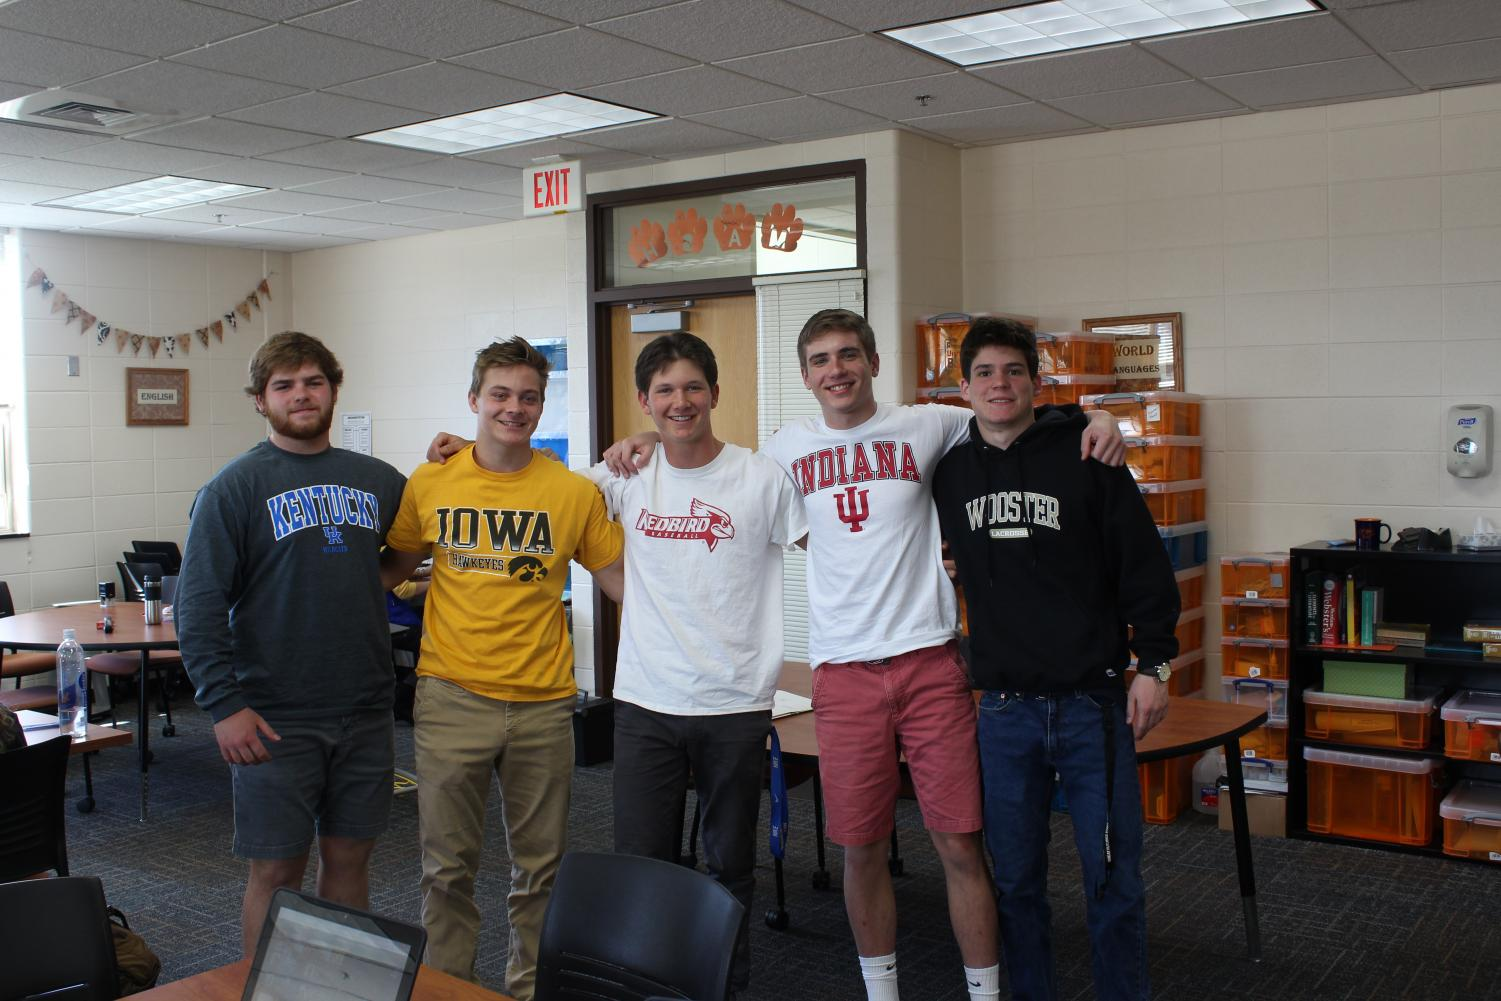 Matt+Bechtold+is+joining+the+University+of+Kentucky%2C+Kyle+Junkunc+will+be+attending+the+University+of+Iowa%2C+Tanner+Kelly+is+going+to+Illinois+State+University%2C+Jonny+Lauber+is+enrolling+at+Indiana+University+and+Matt+Engfer+is+attending+the+College+of+Wooster.+%0A